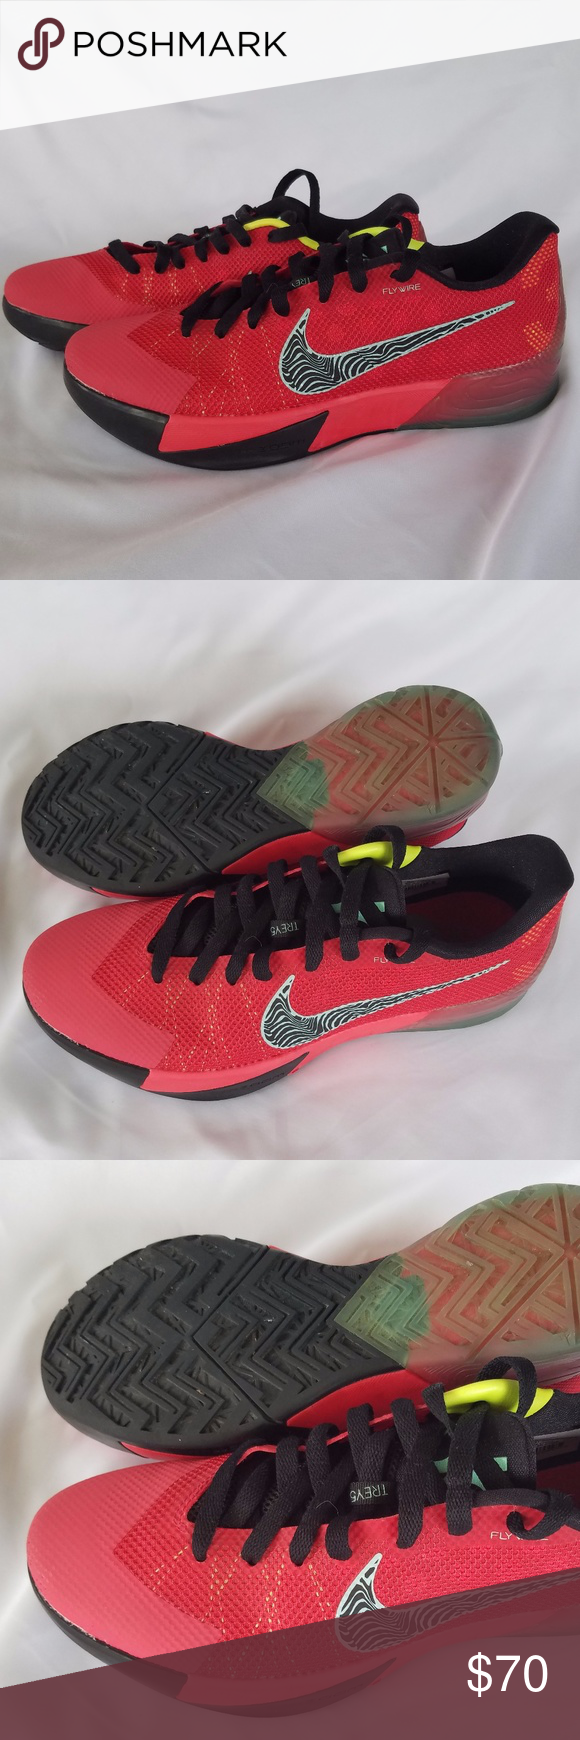 f8c1449a7ea6 ... norway nike kd trey 5 ii size 8 red and black nike kd trey 5 ii